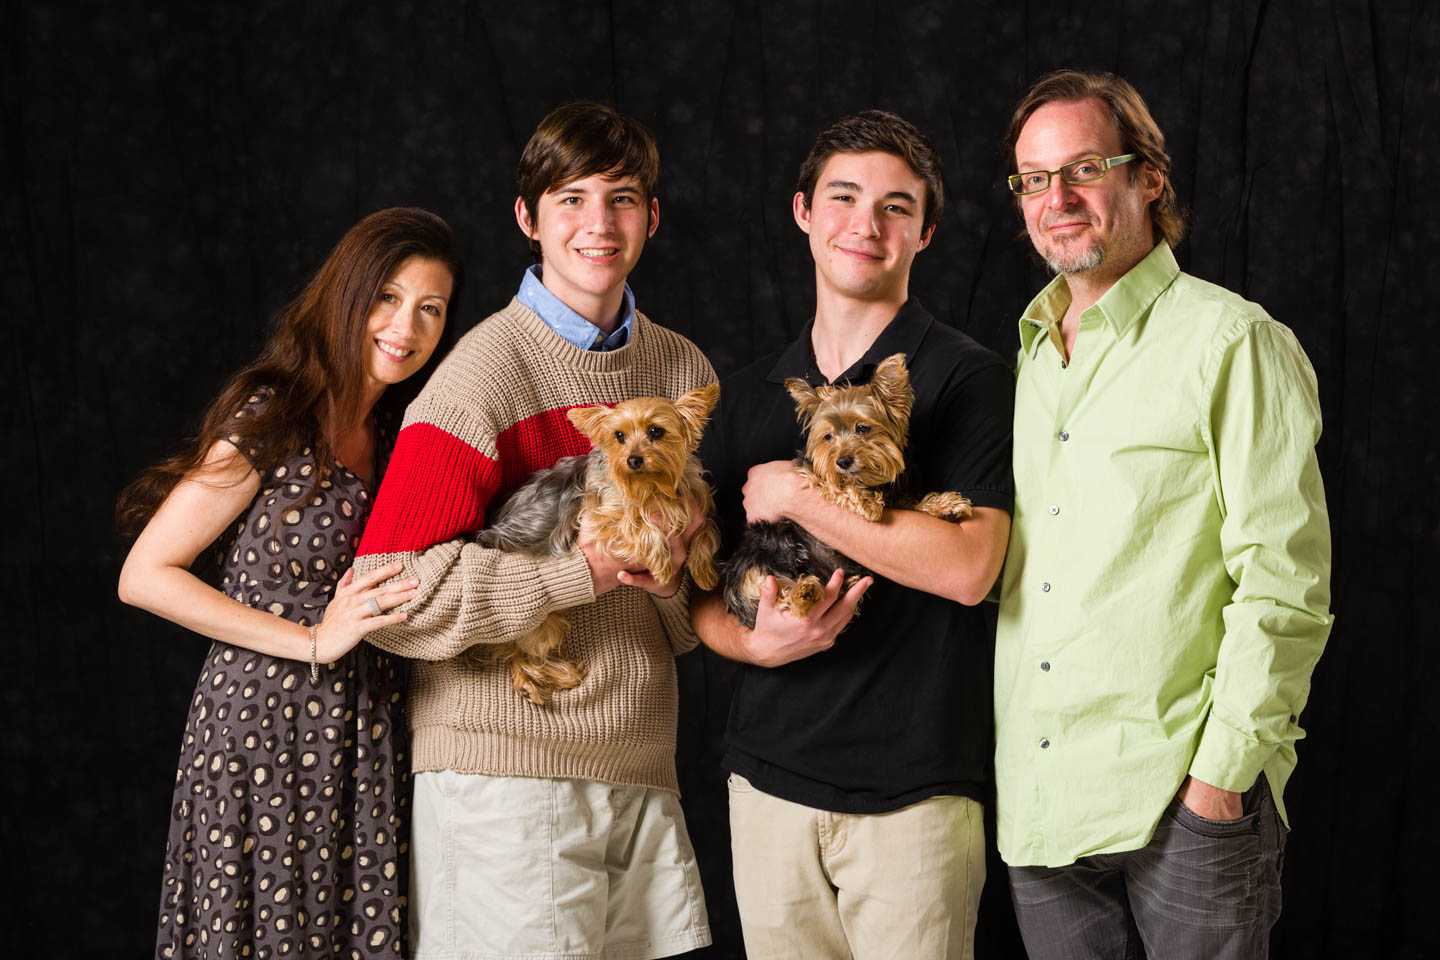 Family portraits with the family dogs